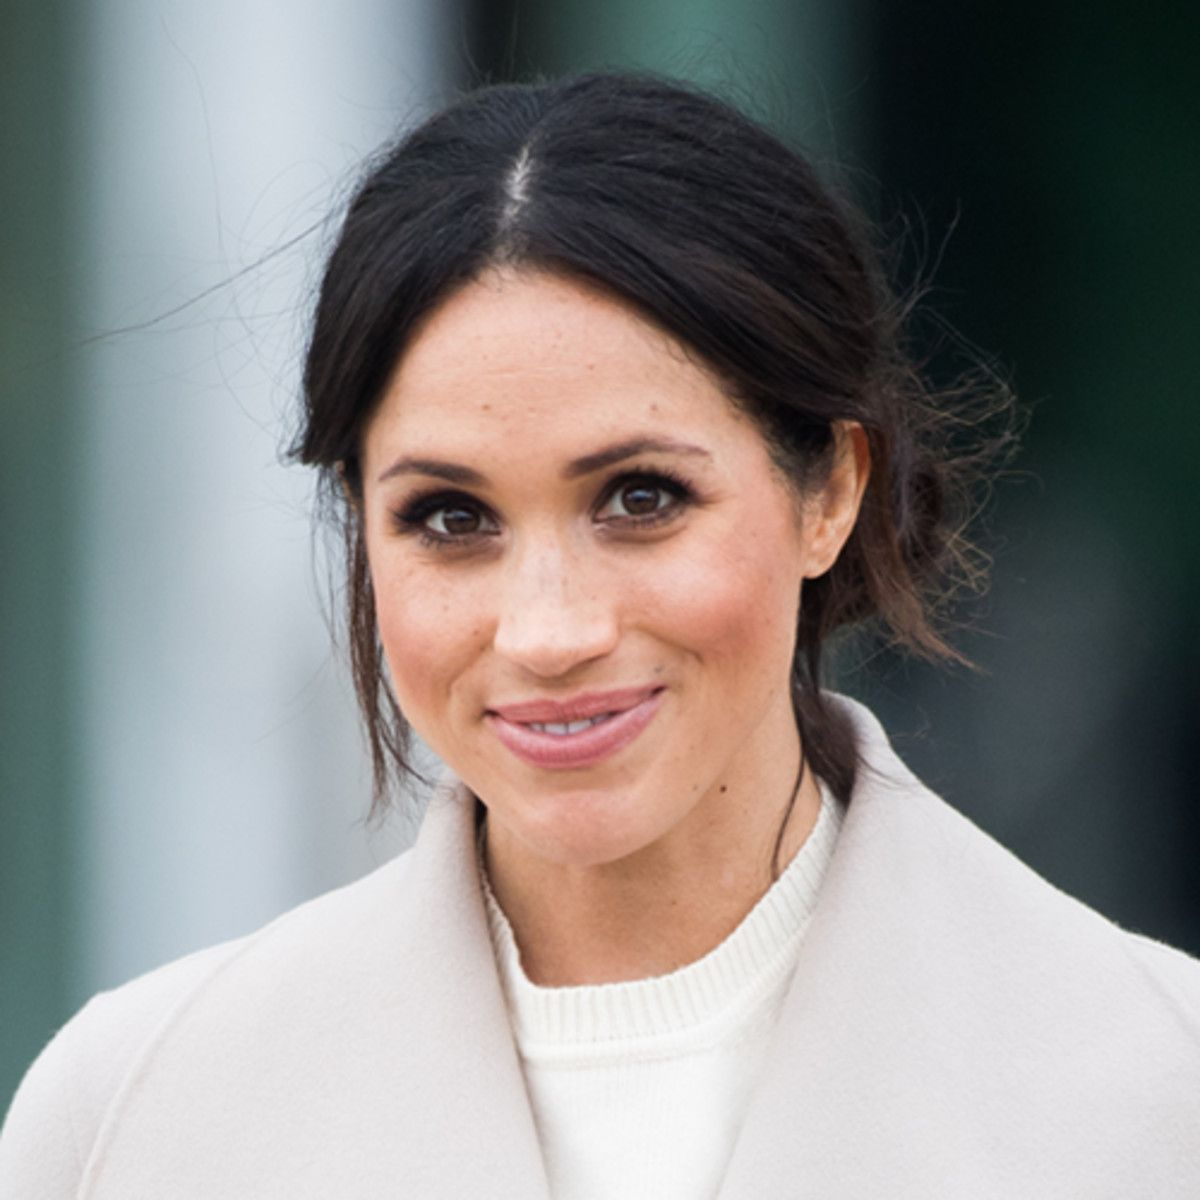 meghan-markle-visits-the-iconic-titanic-belfast-during-their-visit-to-northern-ireland-on-marc...jpg